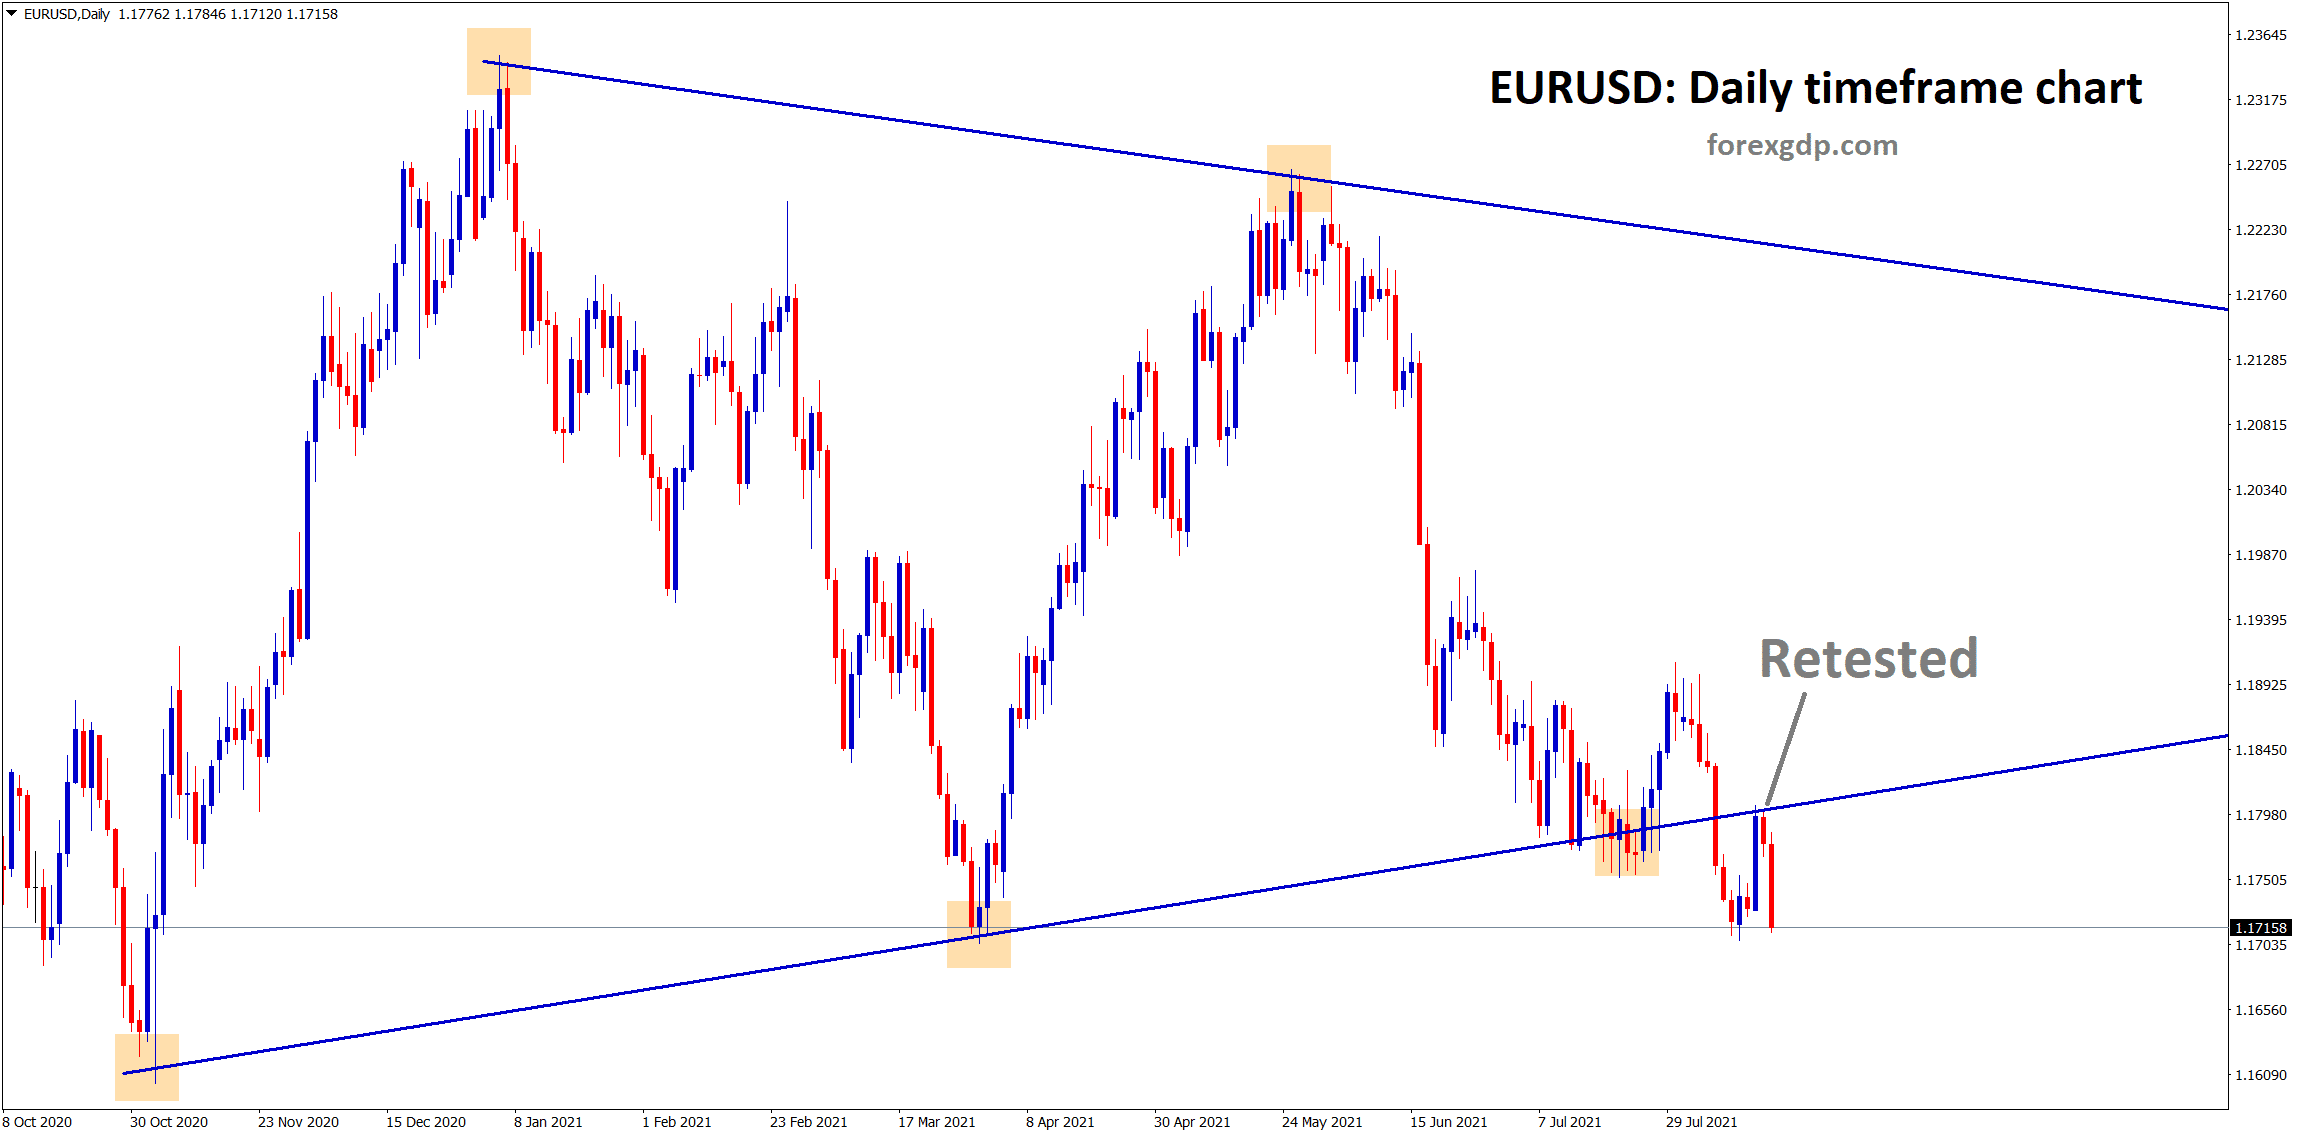 EURUSD retested the broken symmetrical triangle and fell back again to the horizontal support.